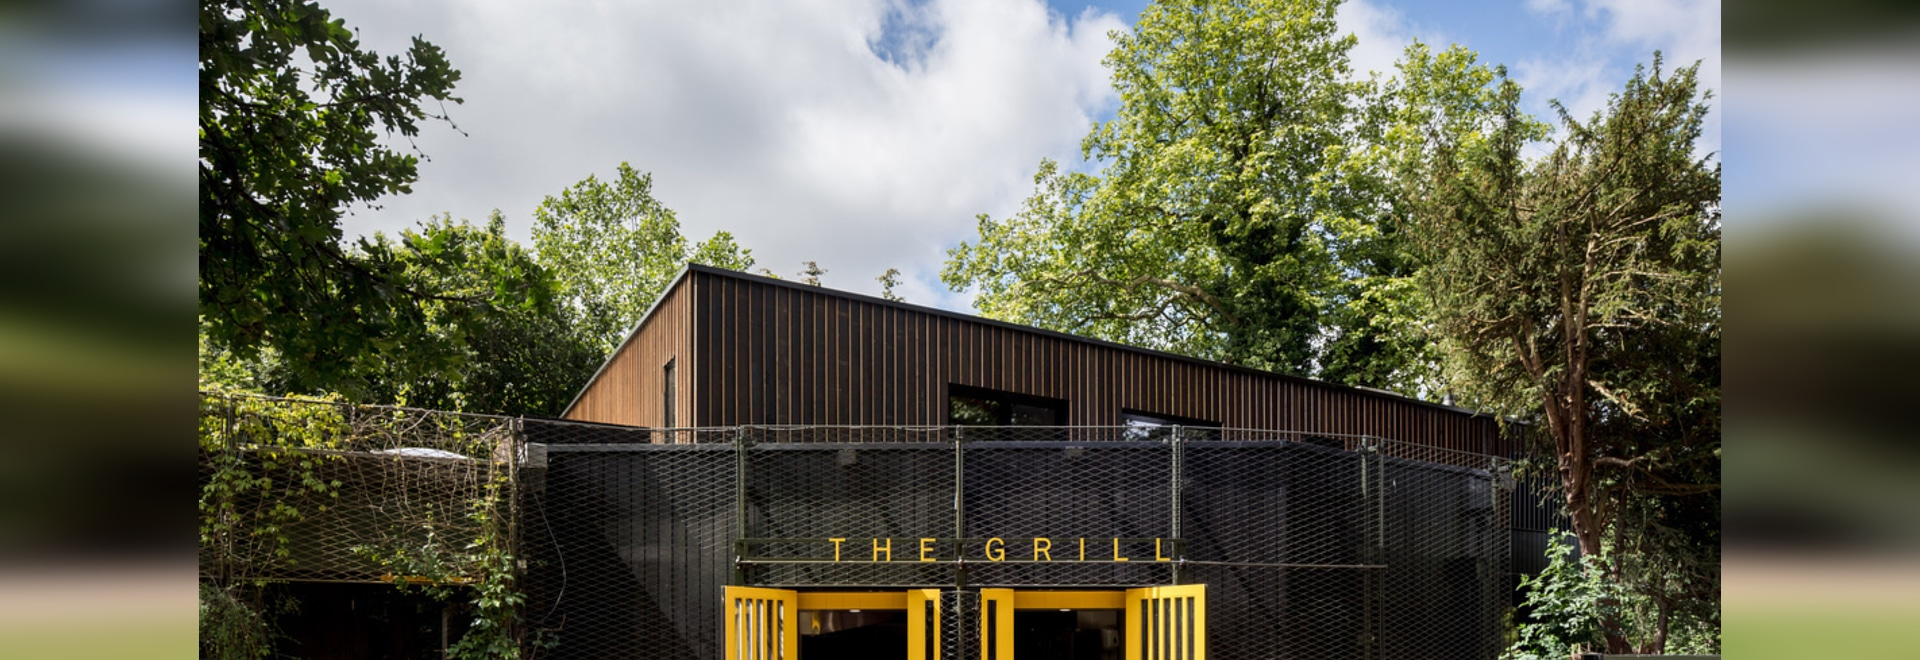 Regent's Park -Freilicht-Theater/Reed Watts Architects